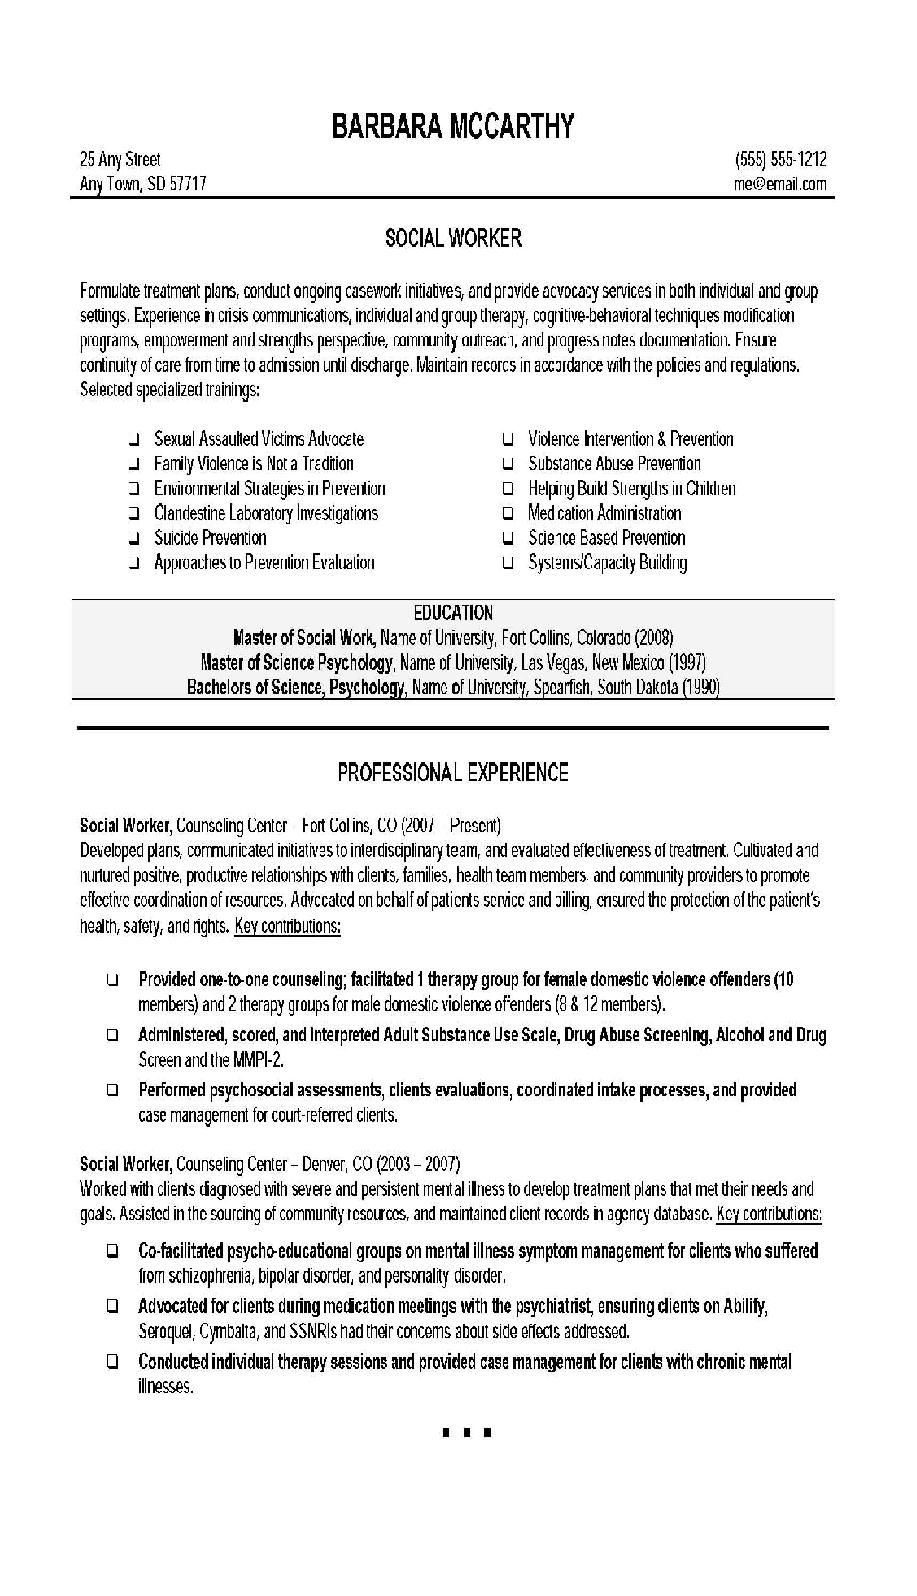 Psychological Associate Sample Resume Social Work Resume Examples The Best Click Here Download This Worker .